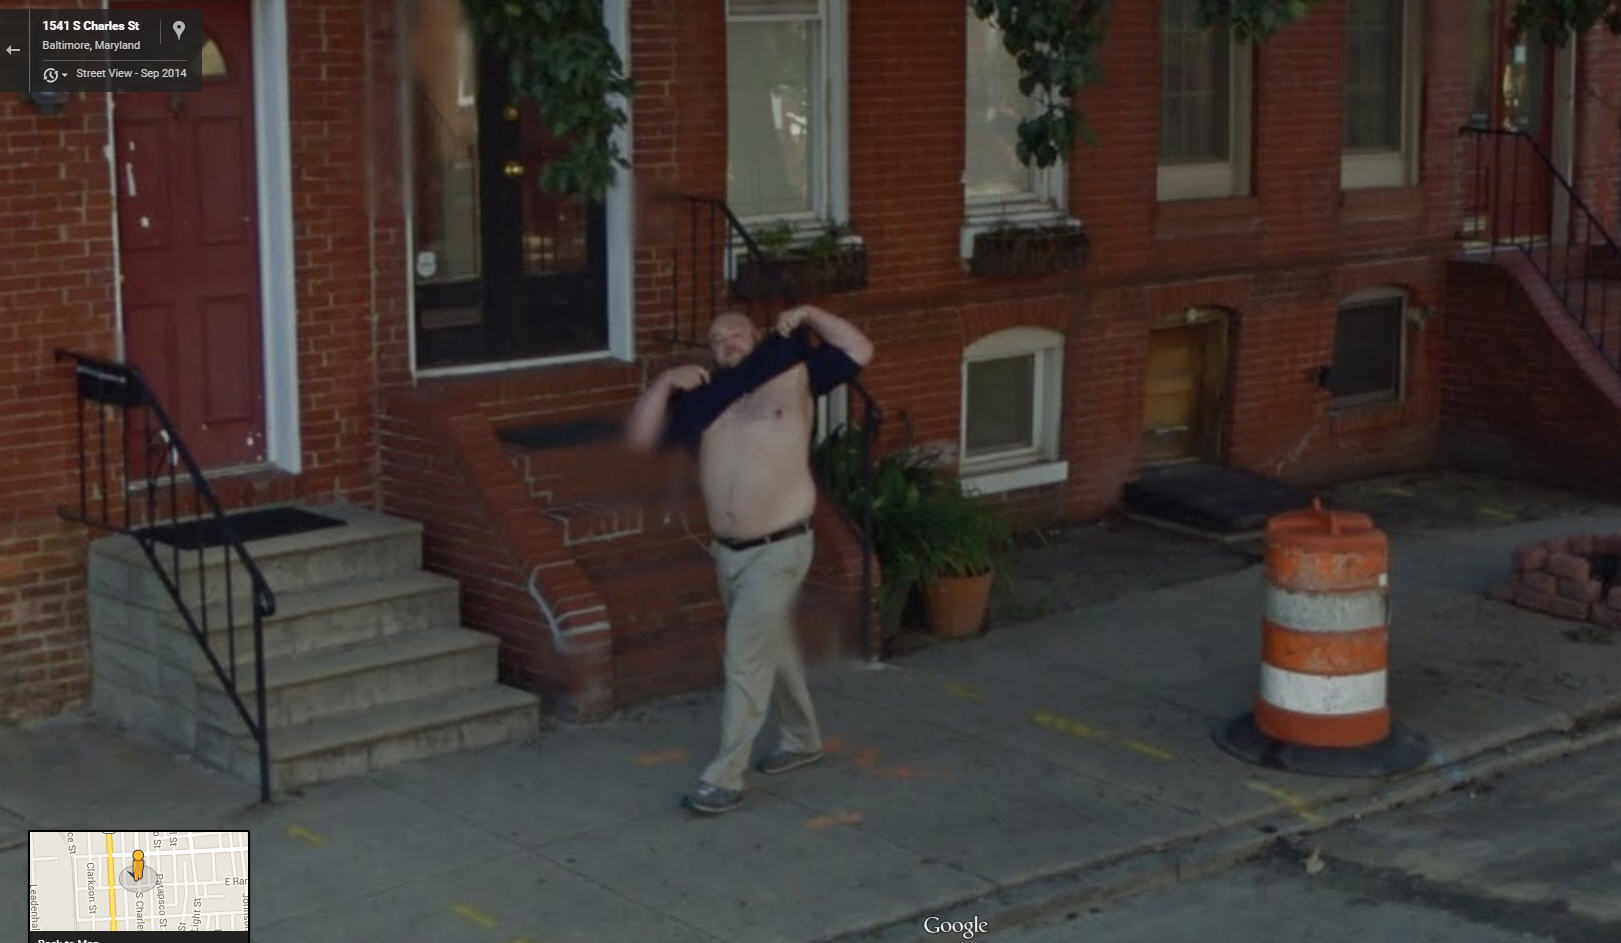 Google Street View Starts a Flashing Fad…